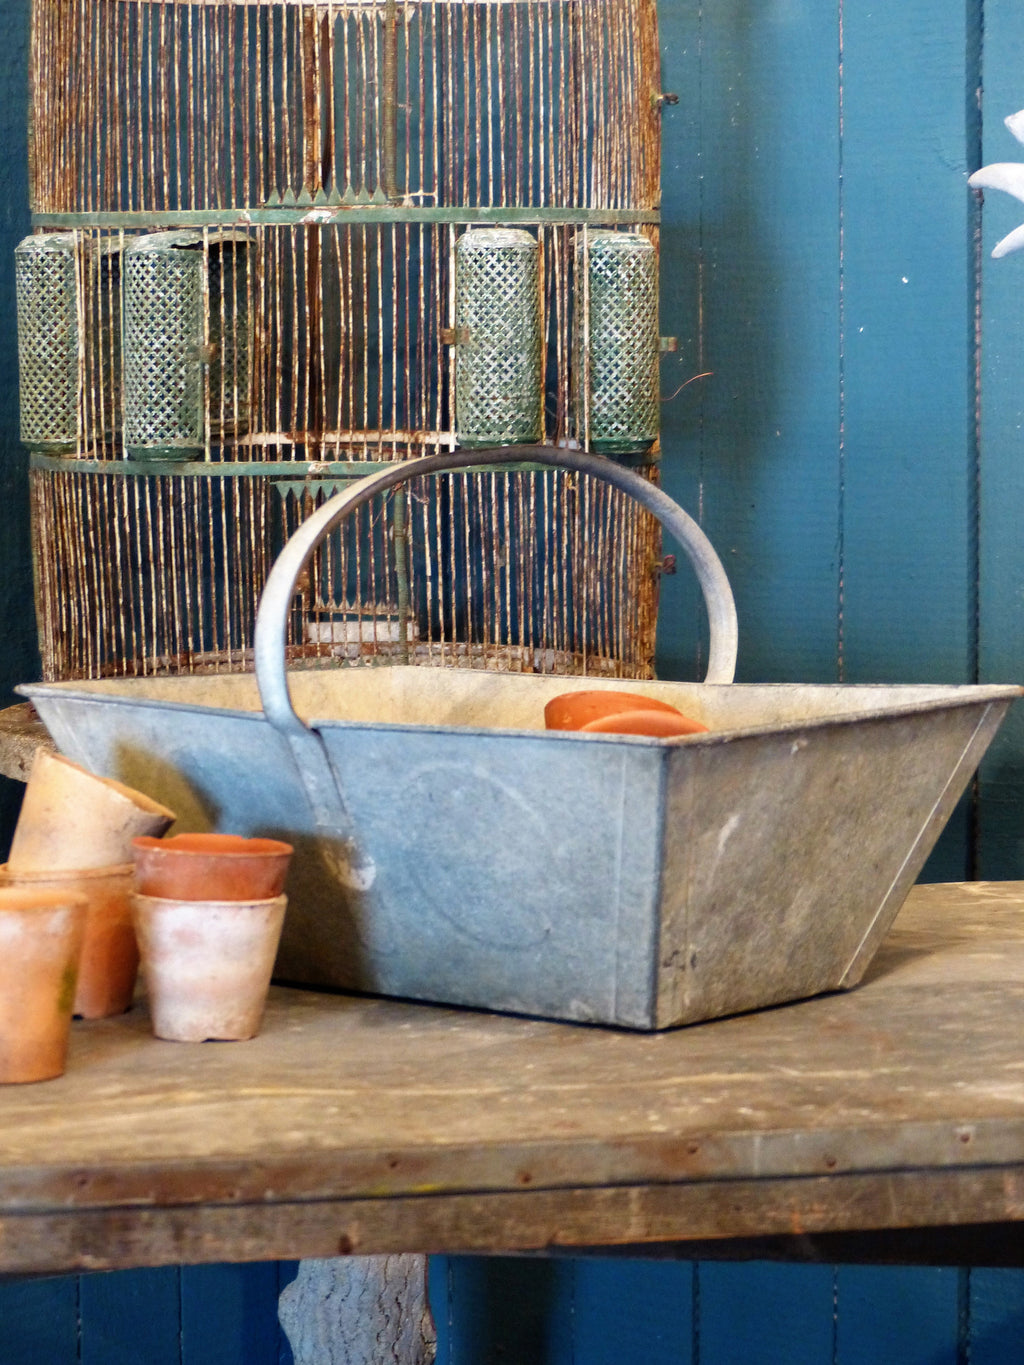 19th century French zinc basket with small vintage terracotta pots